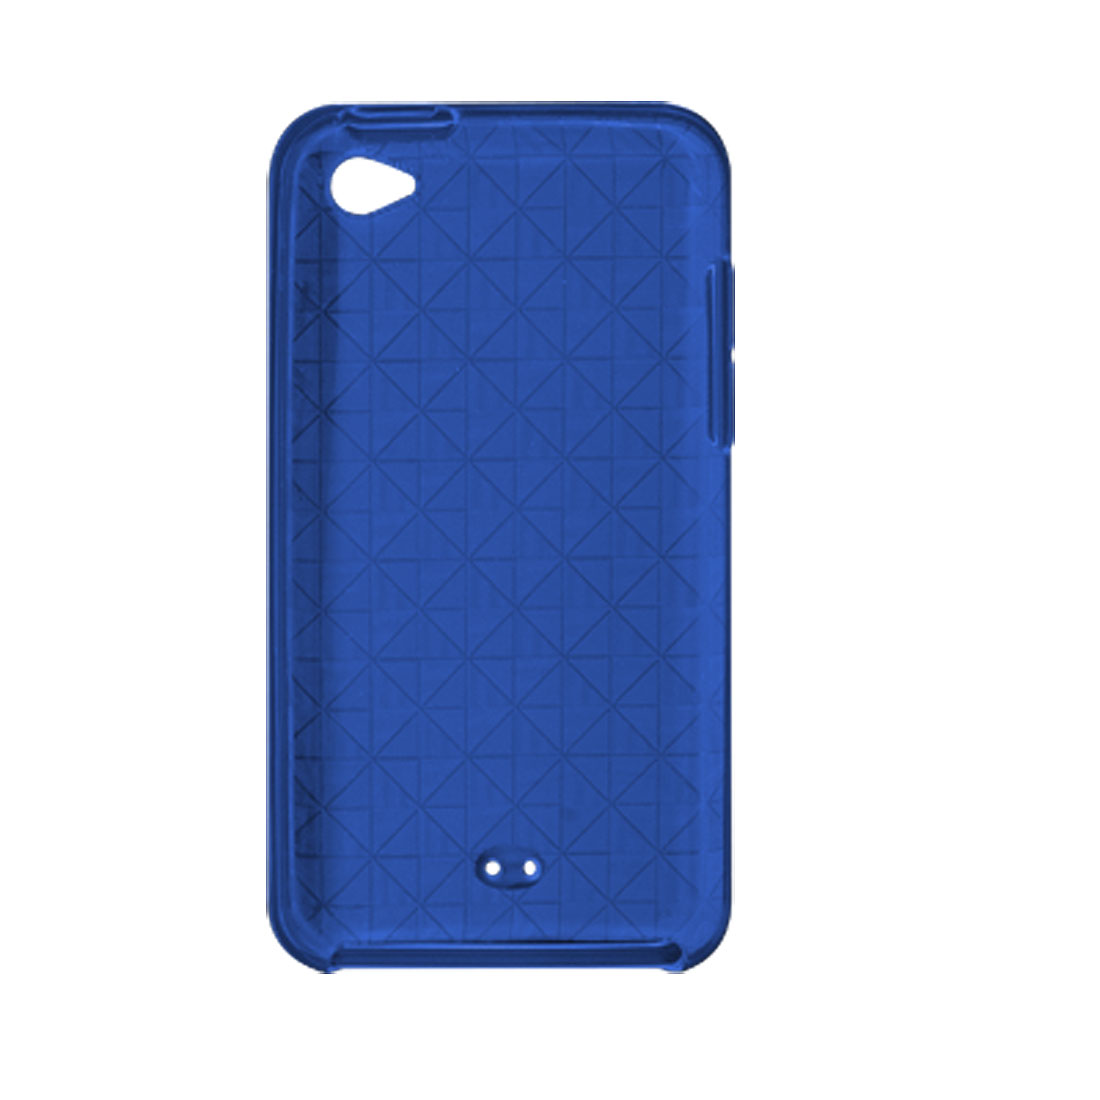 Soft Plastic Argyle Clear Blue Back Cover for iPod Touch 4G